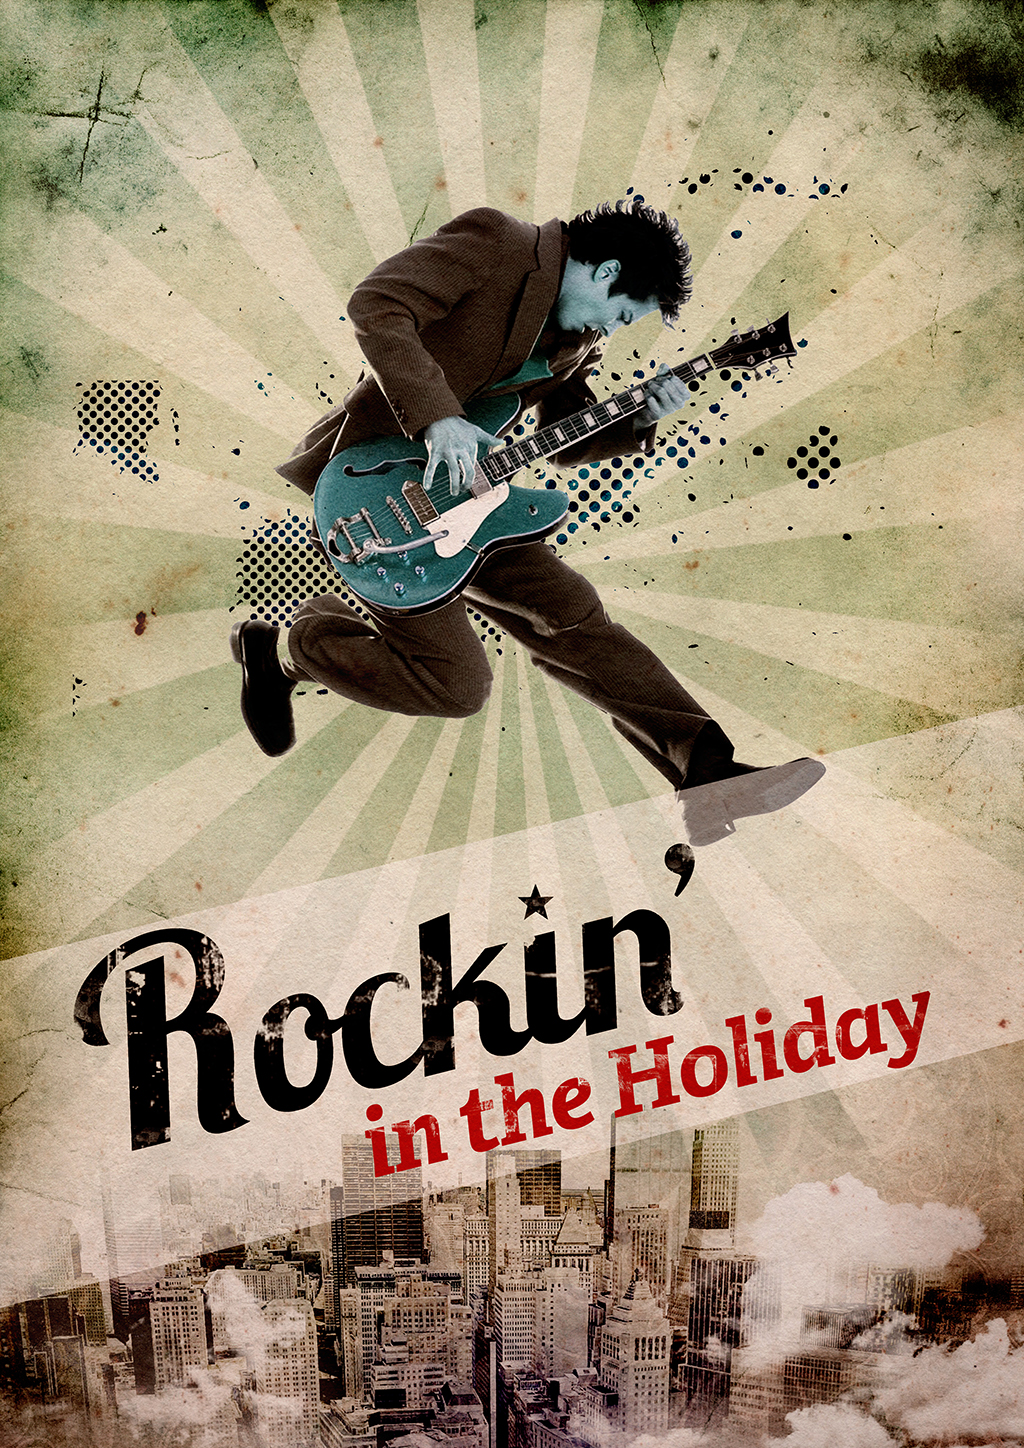 Rockin' in the Holiday